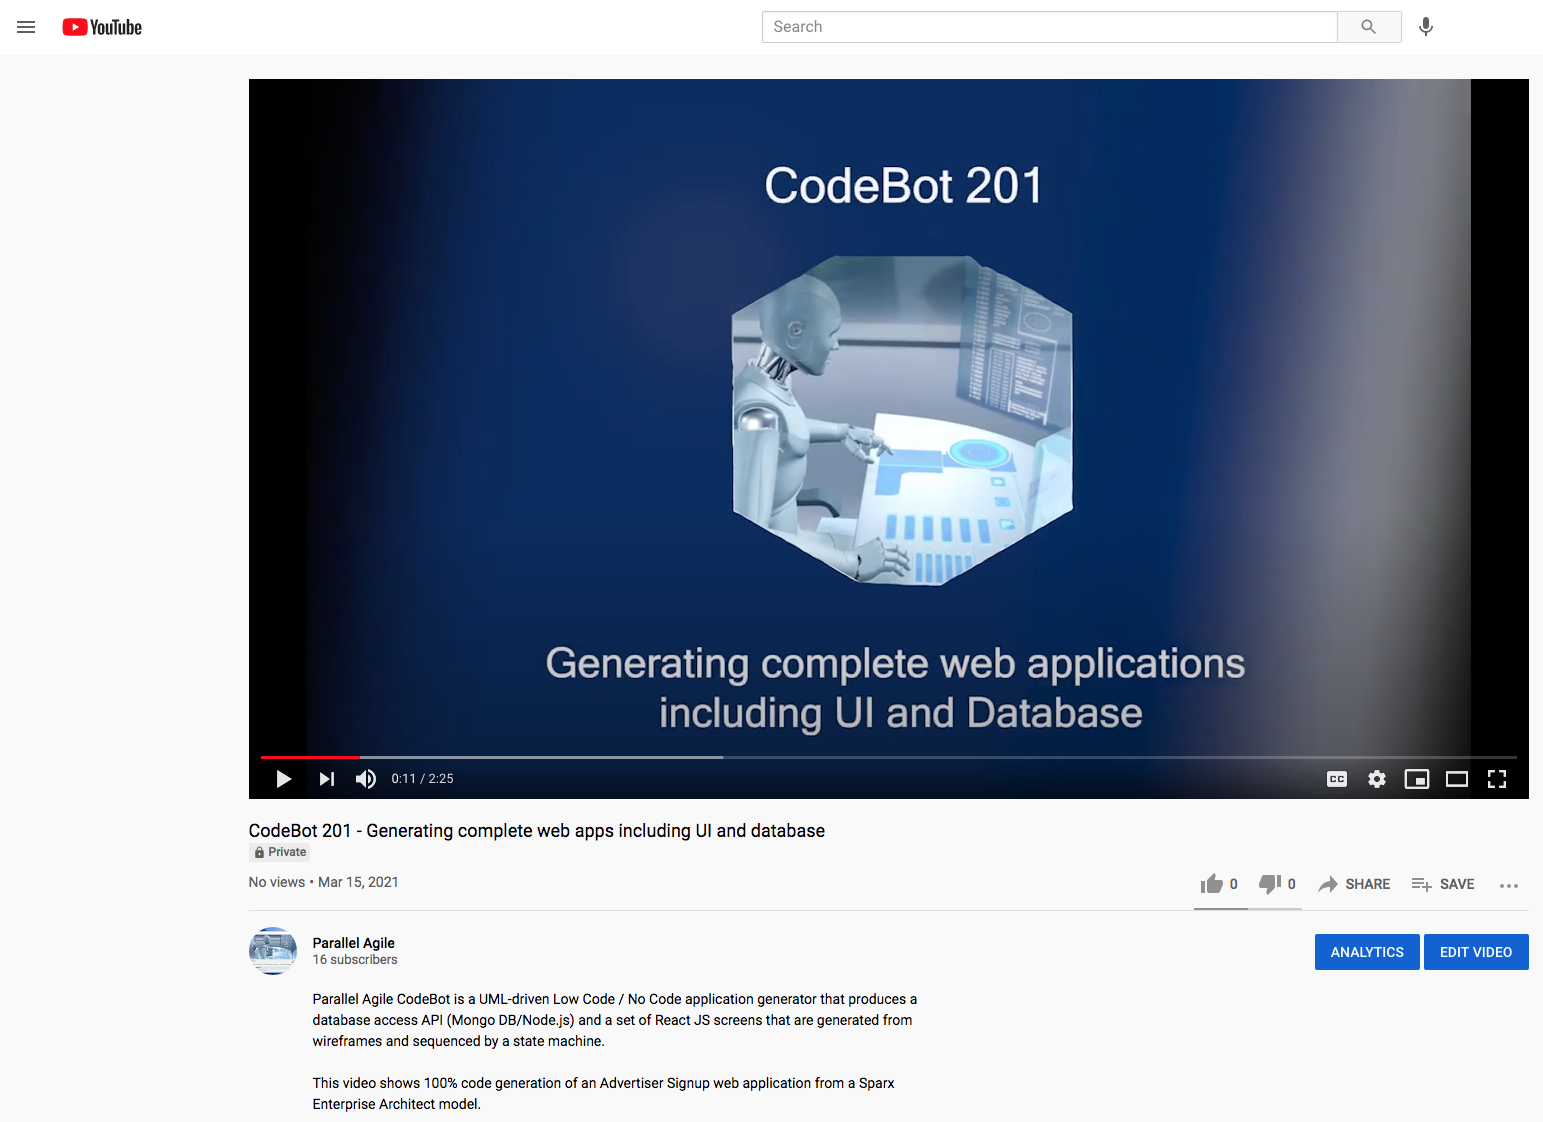 CodeBot 201 Generating complete web apps including UI and database